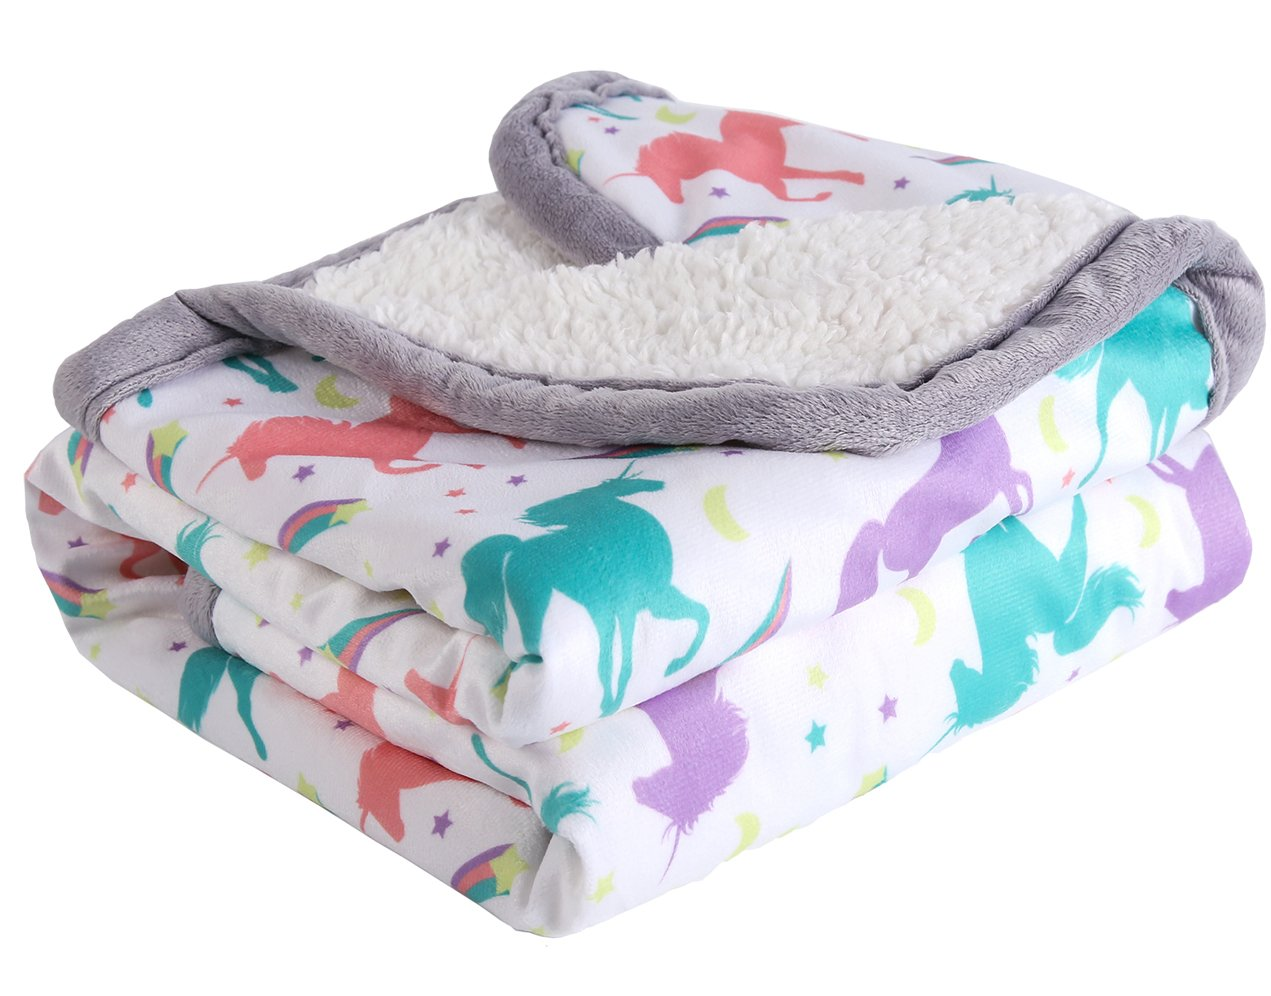 Sunshine Breathable Baby Blanket Print Fleece Best Registry Gift for Newborn Soft- Perfect for Prince and Princess 30'' x 40'' (Unicorn)